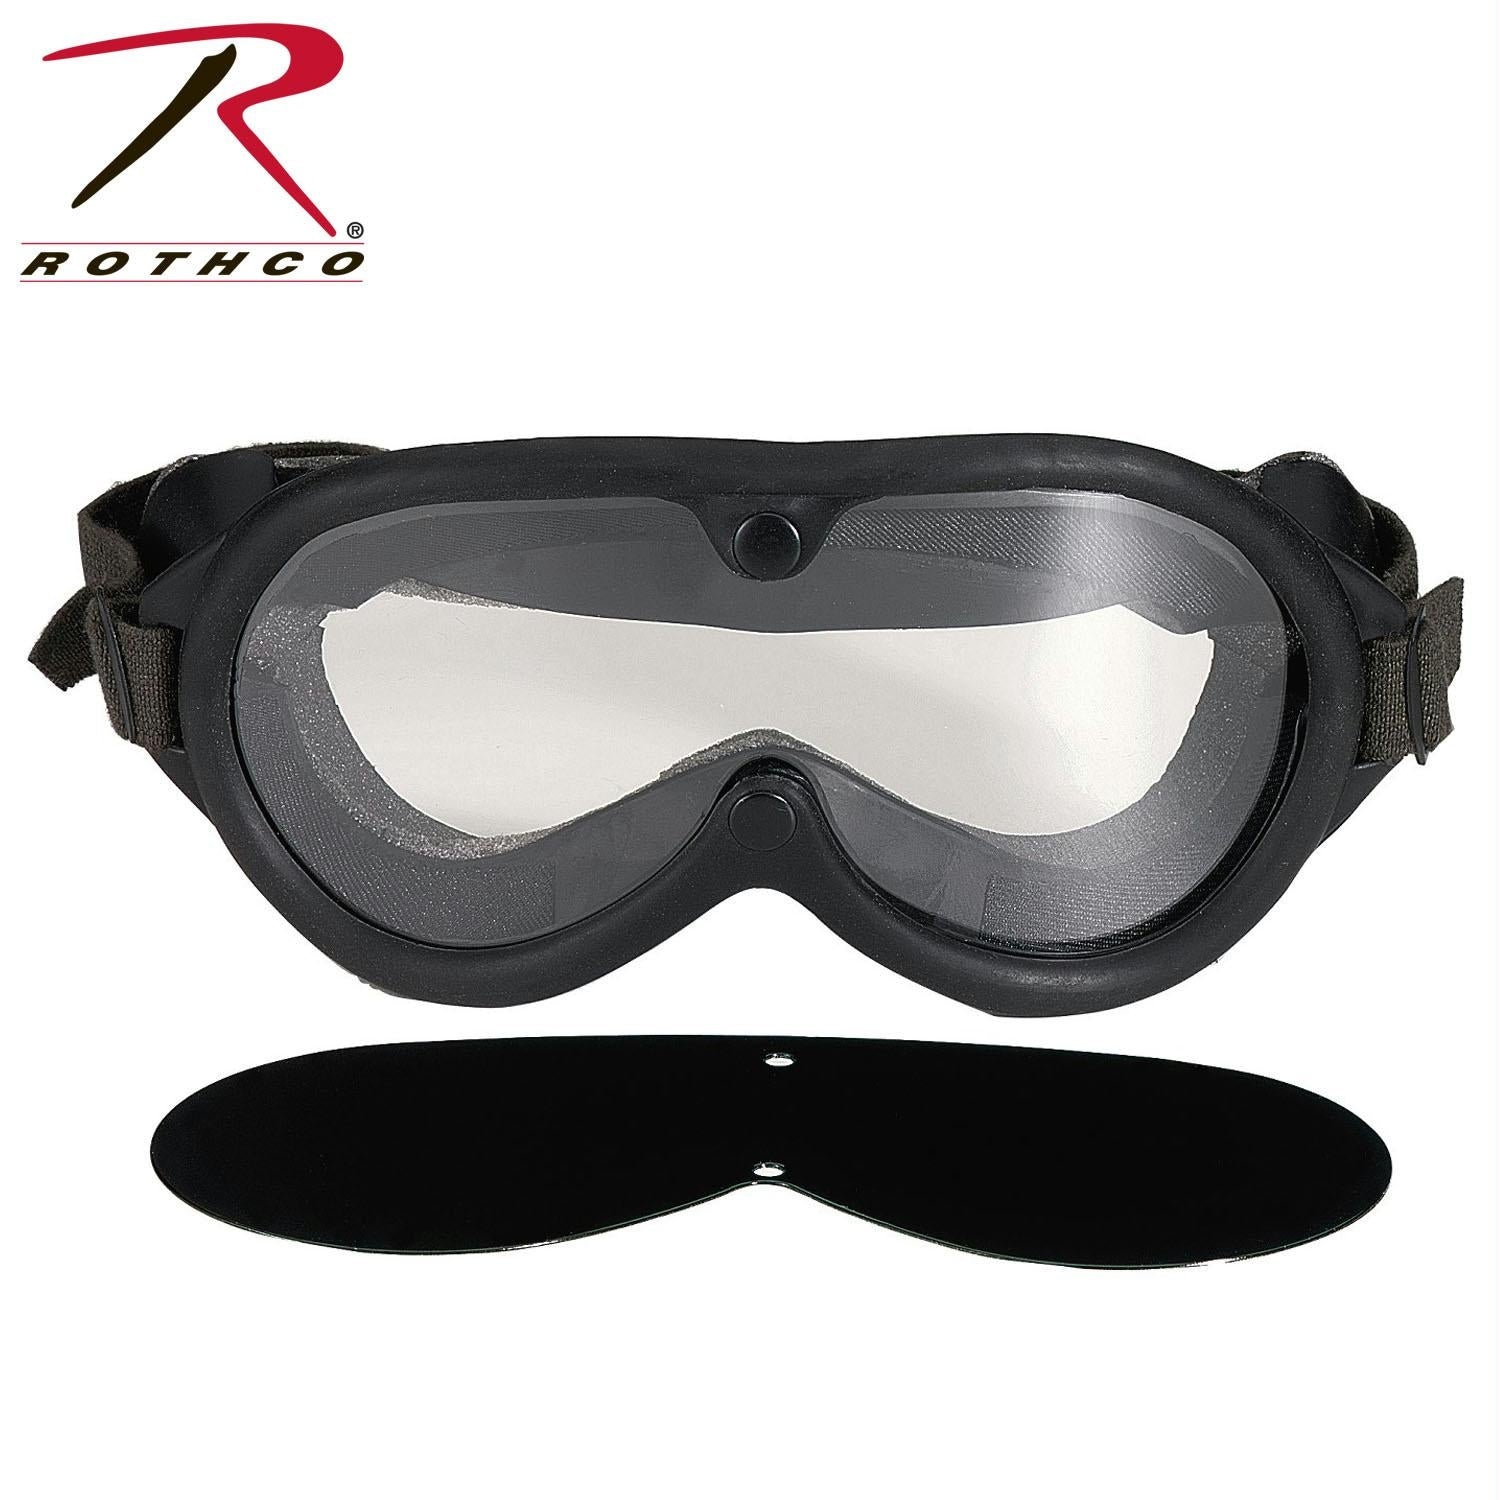 Rothco G.I. Type Sun, Wind & Dust Goggles - Black